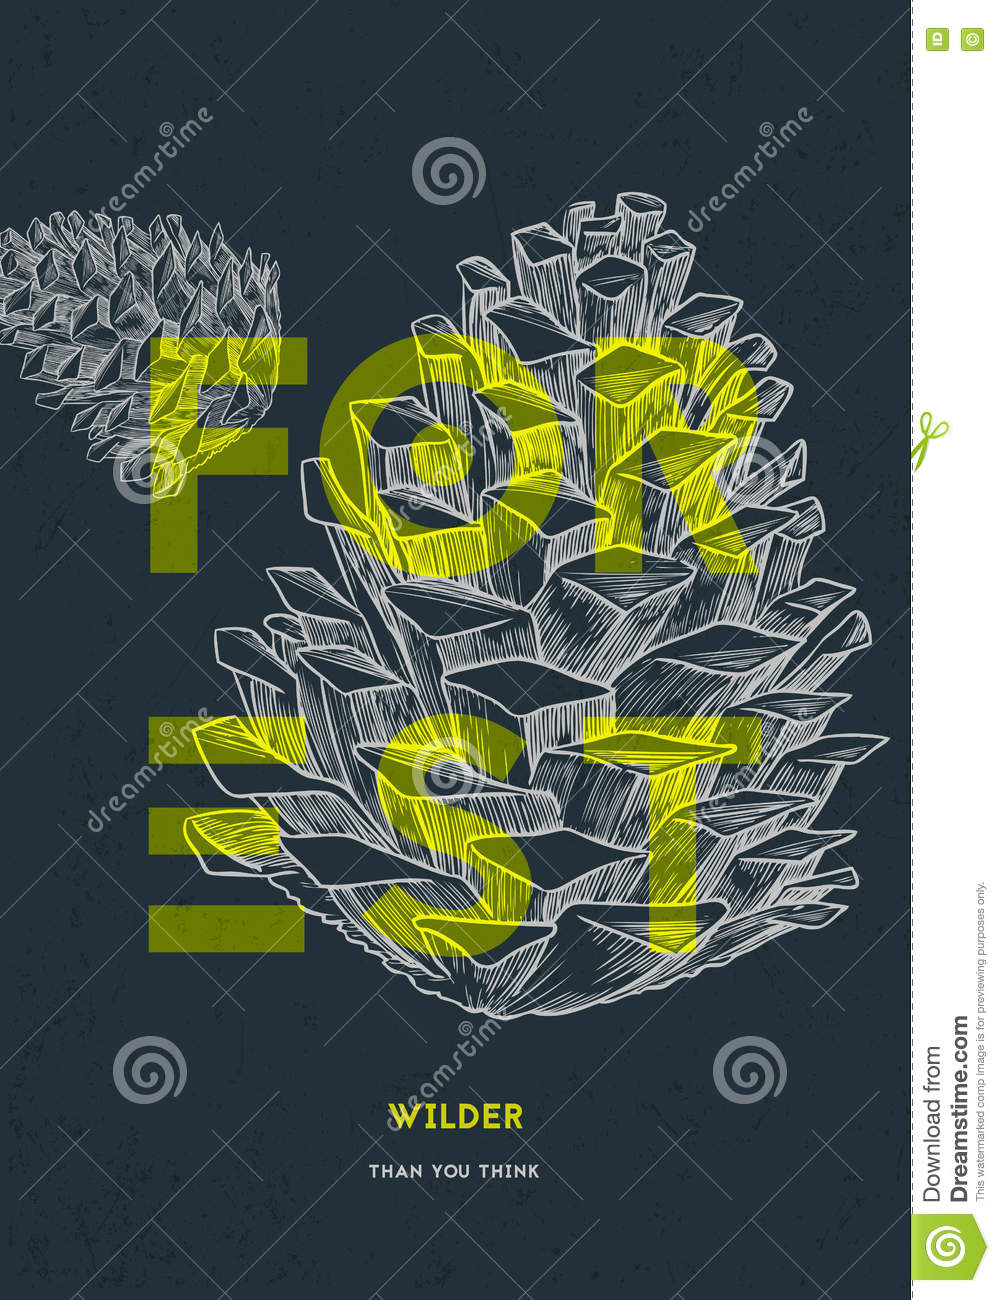 forest poster design template stock vector illustration of cone